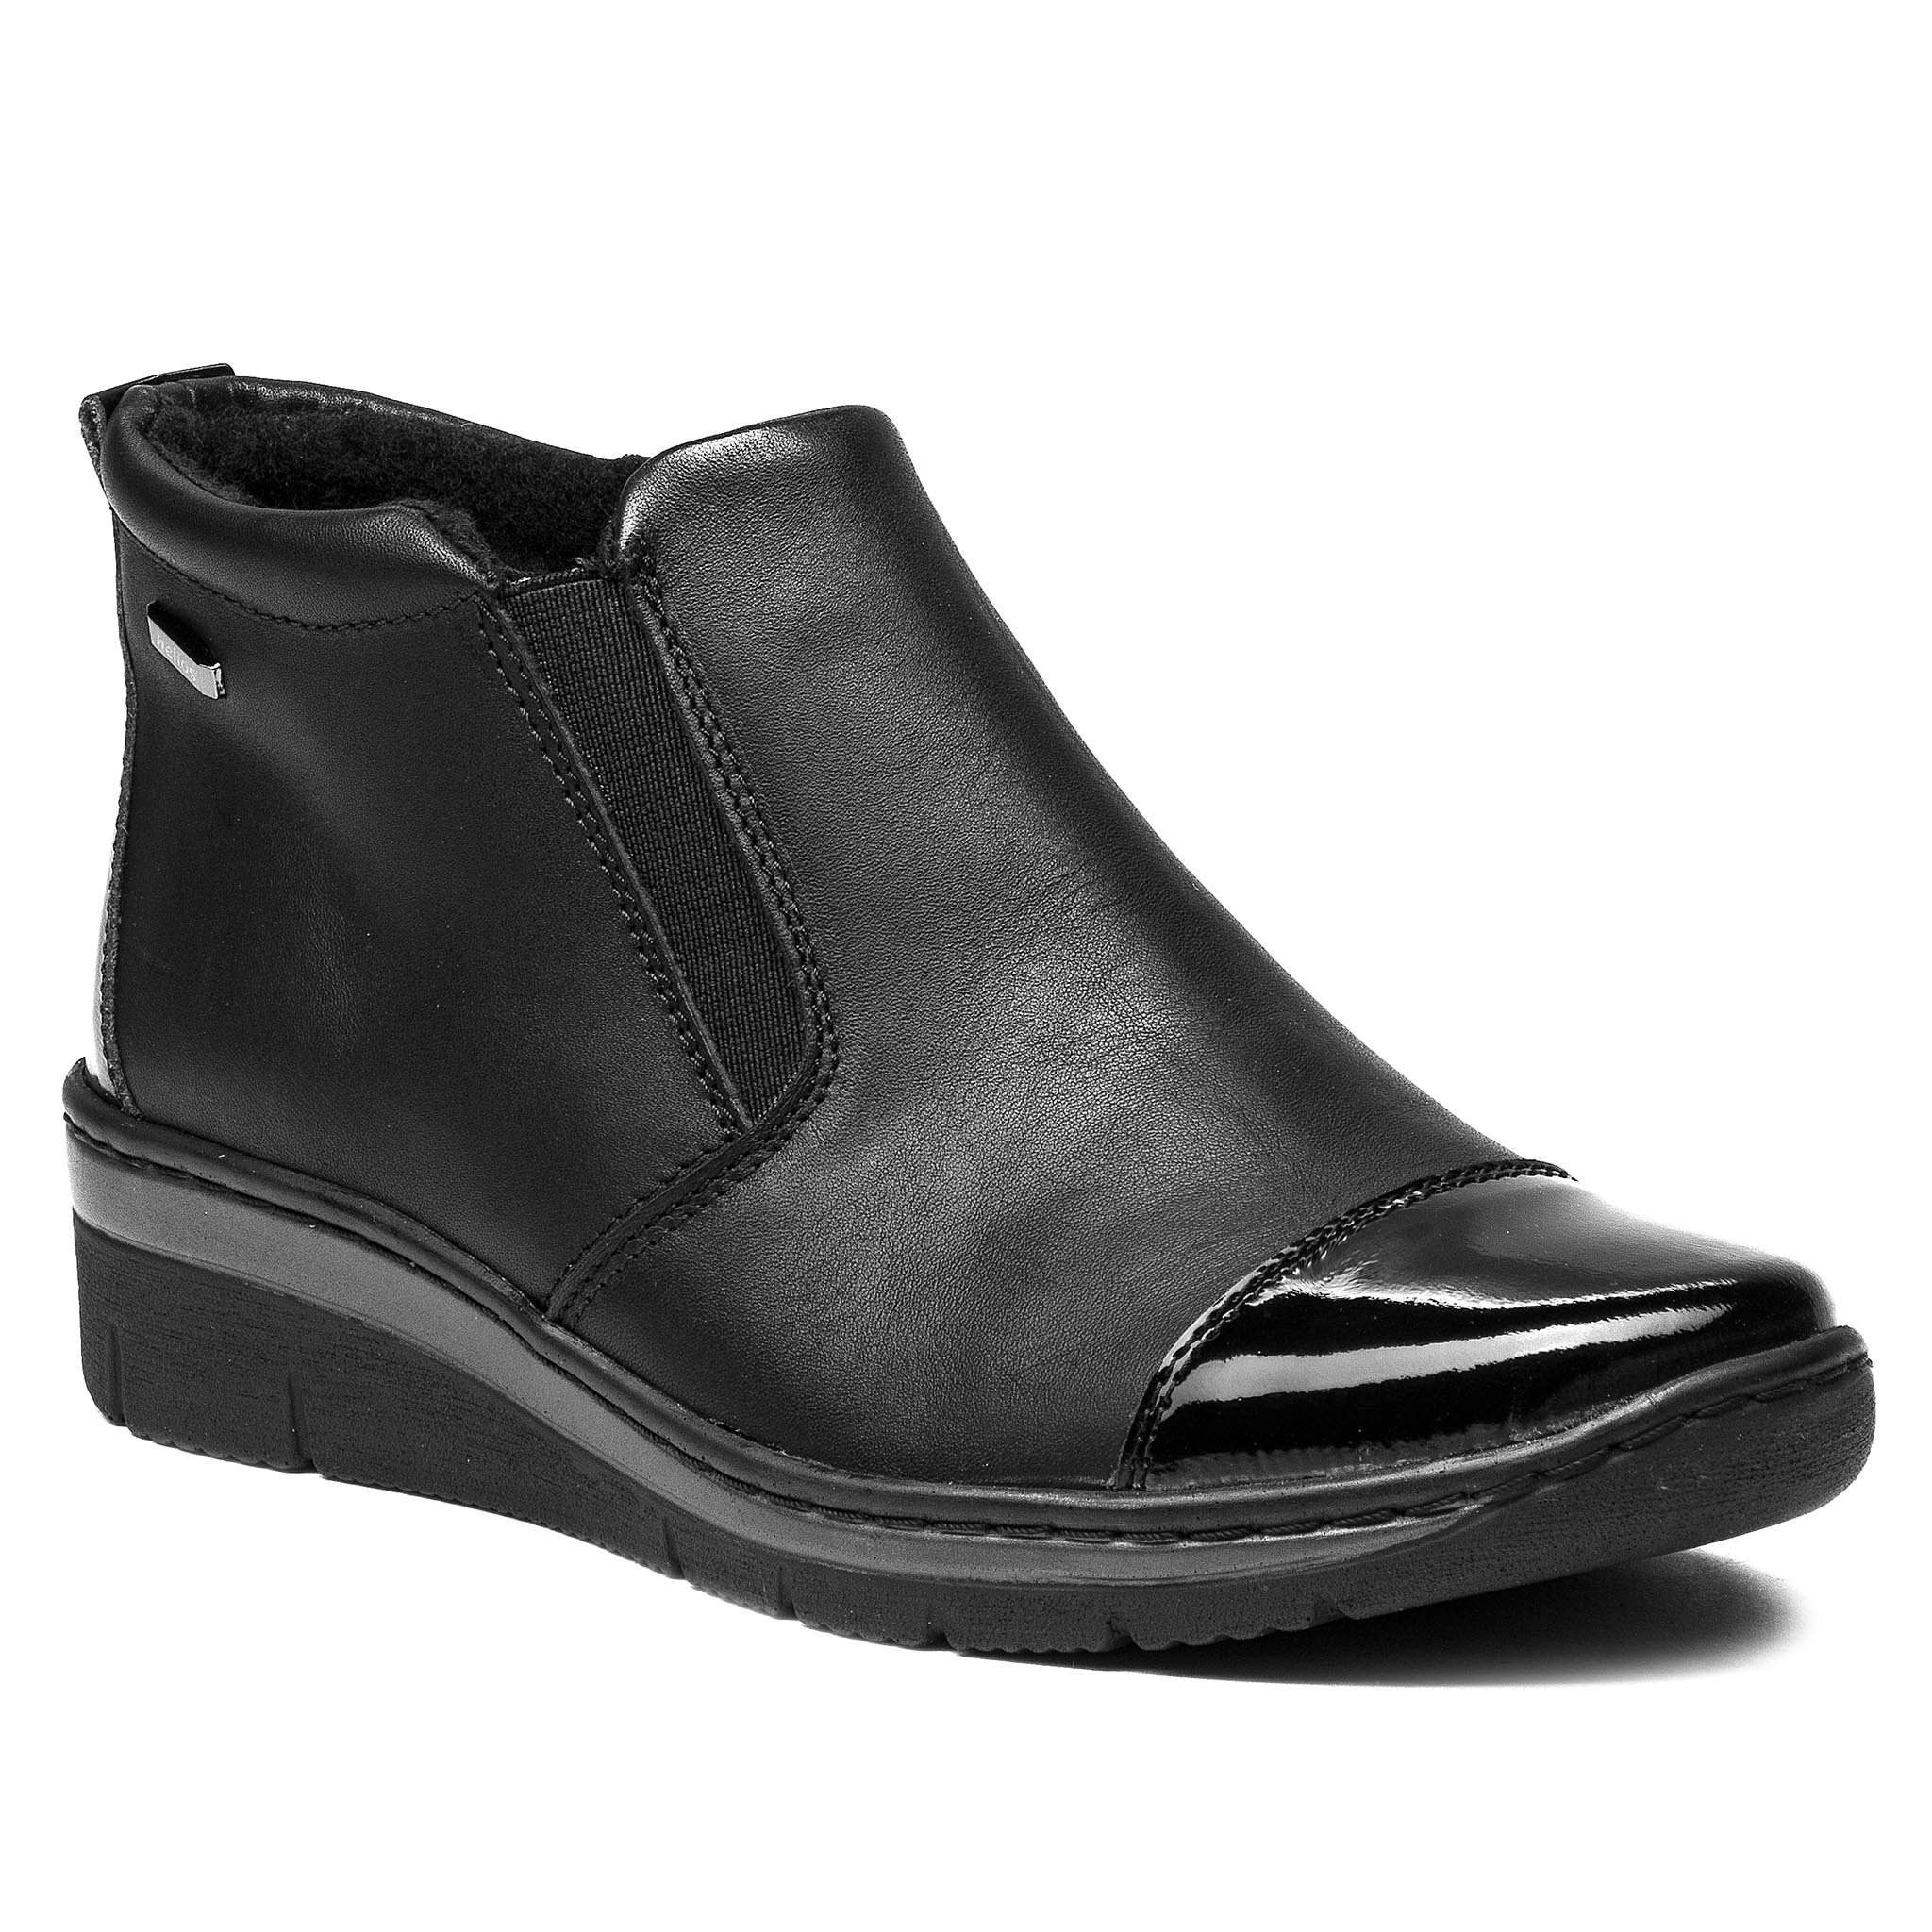 Bottines HELIOS - 546 Noir